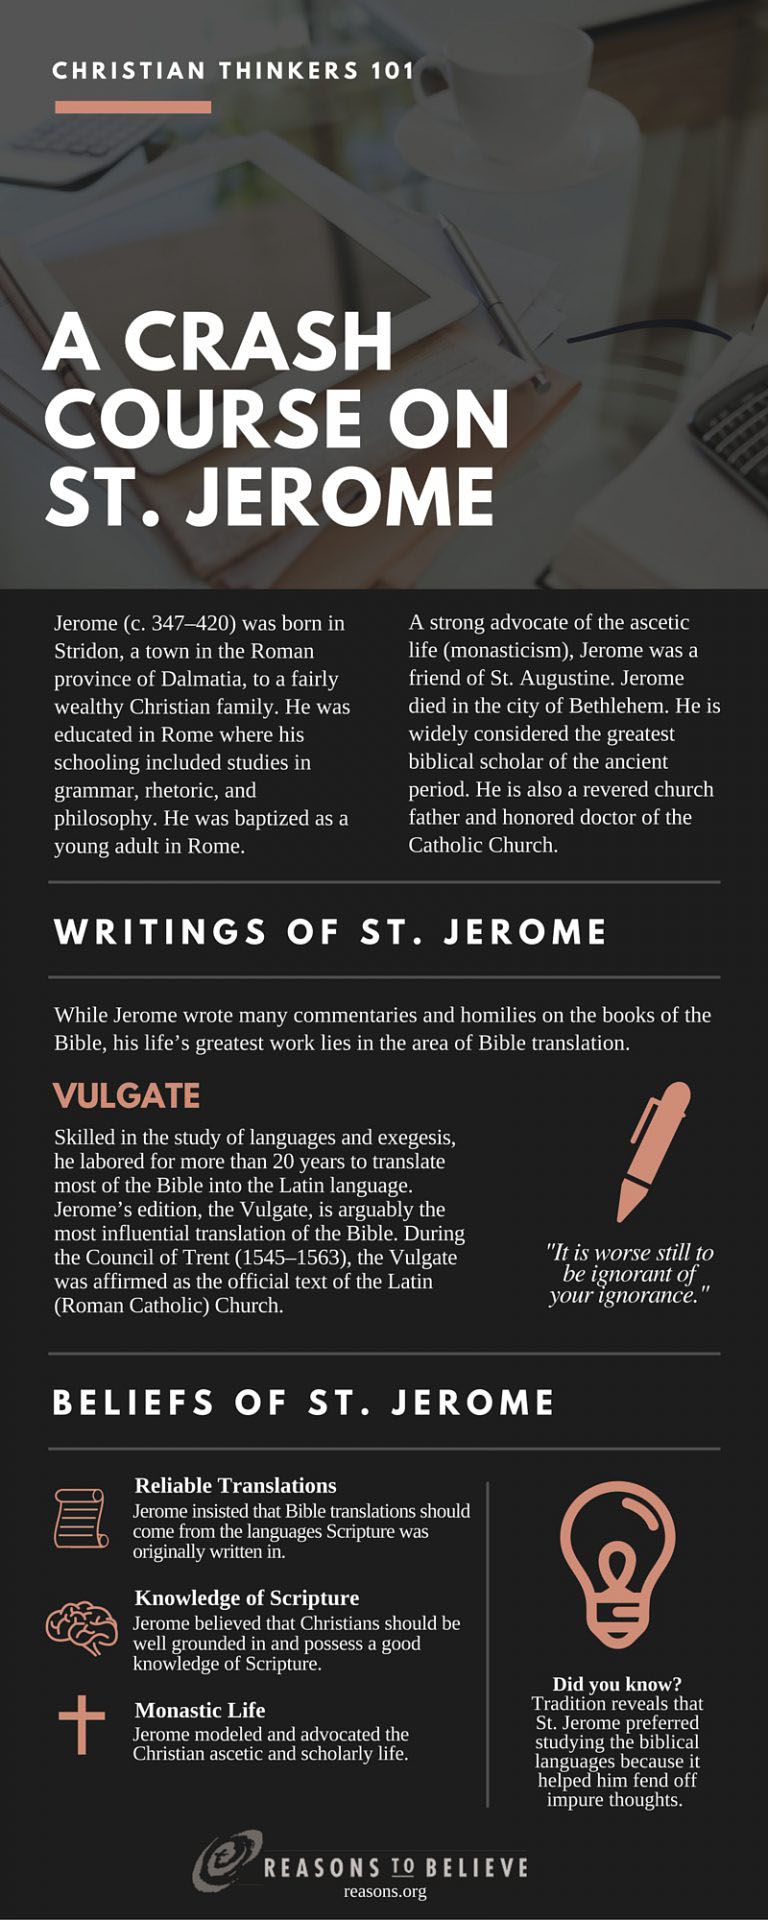 blog__inline--christian-thinkers-101-a-crash-course-on-st-jerome